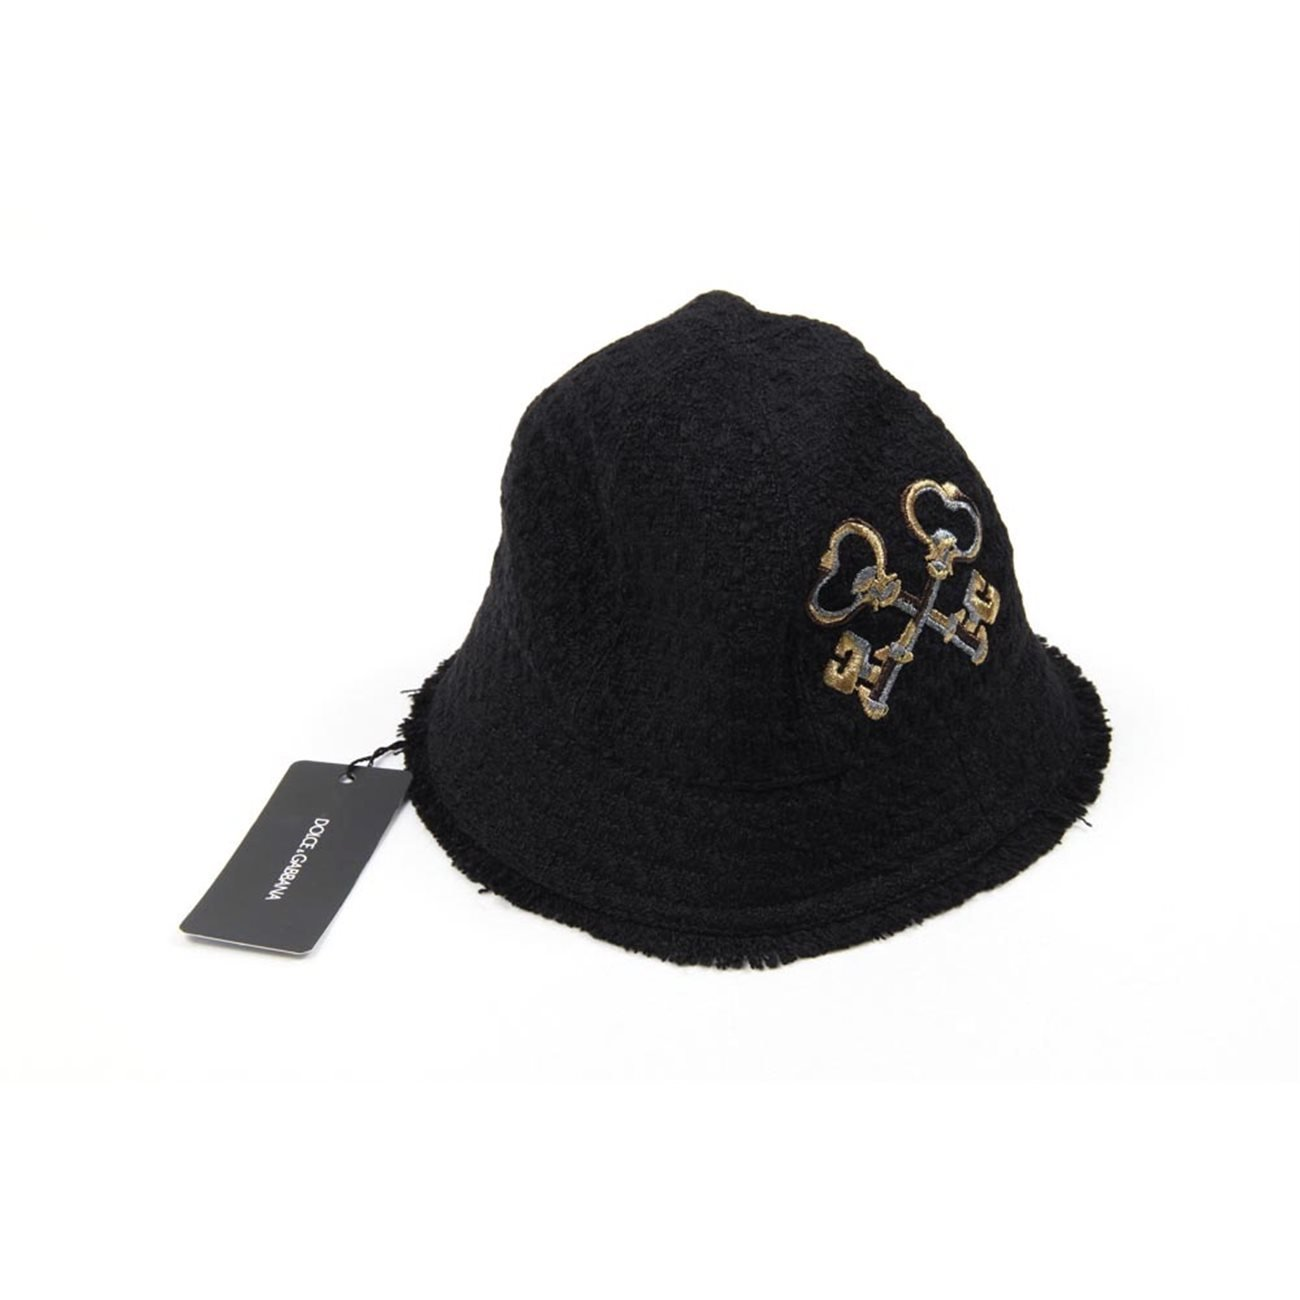 DOLCE & GABBANA LADIES HAT